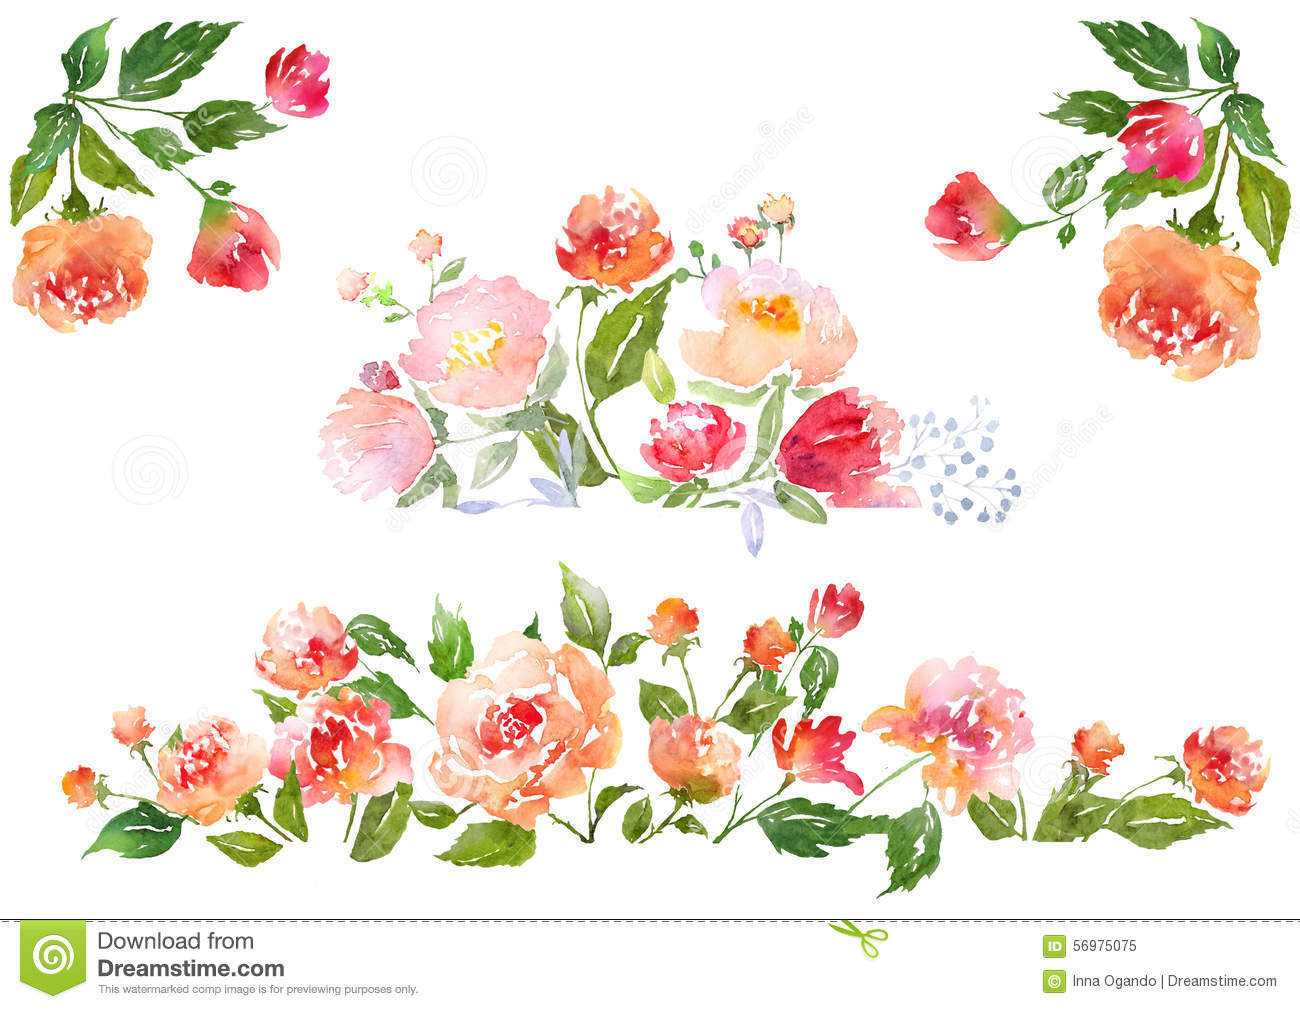 Orange Fall Peonies Wallpaper Set Of Watercolor Floral Composition Stock Illustration